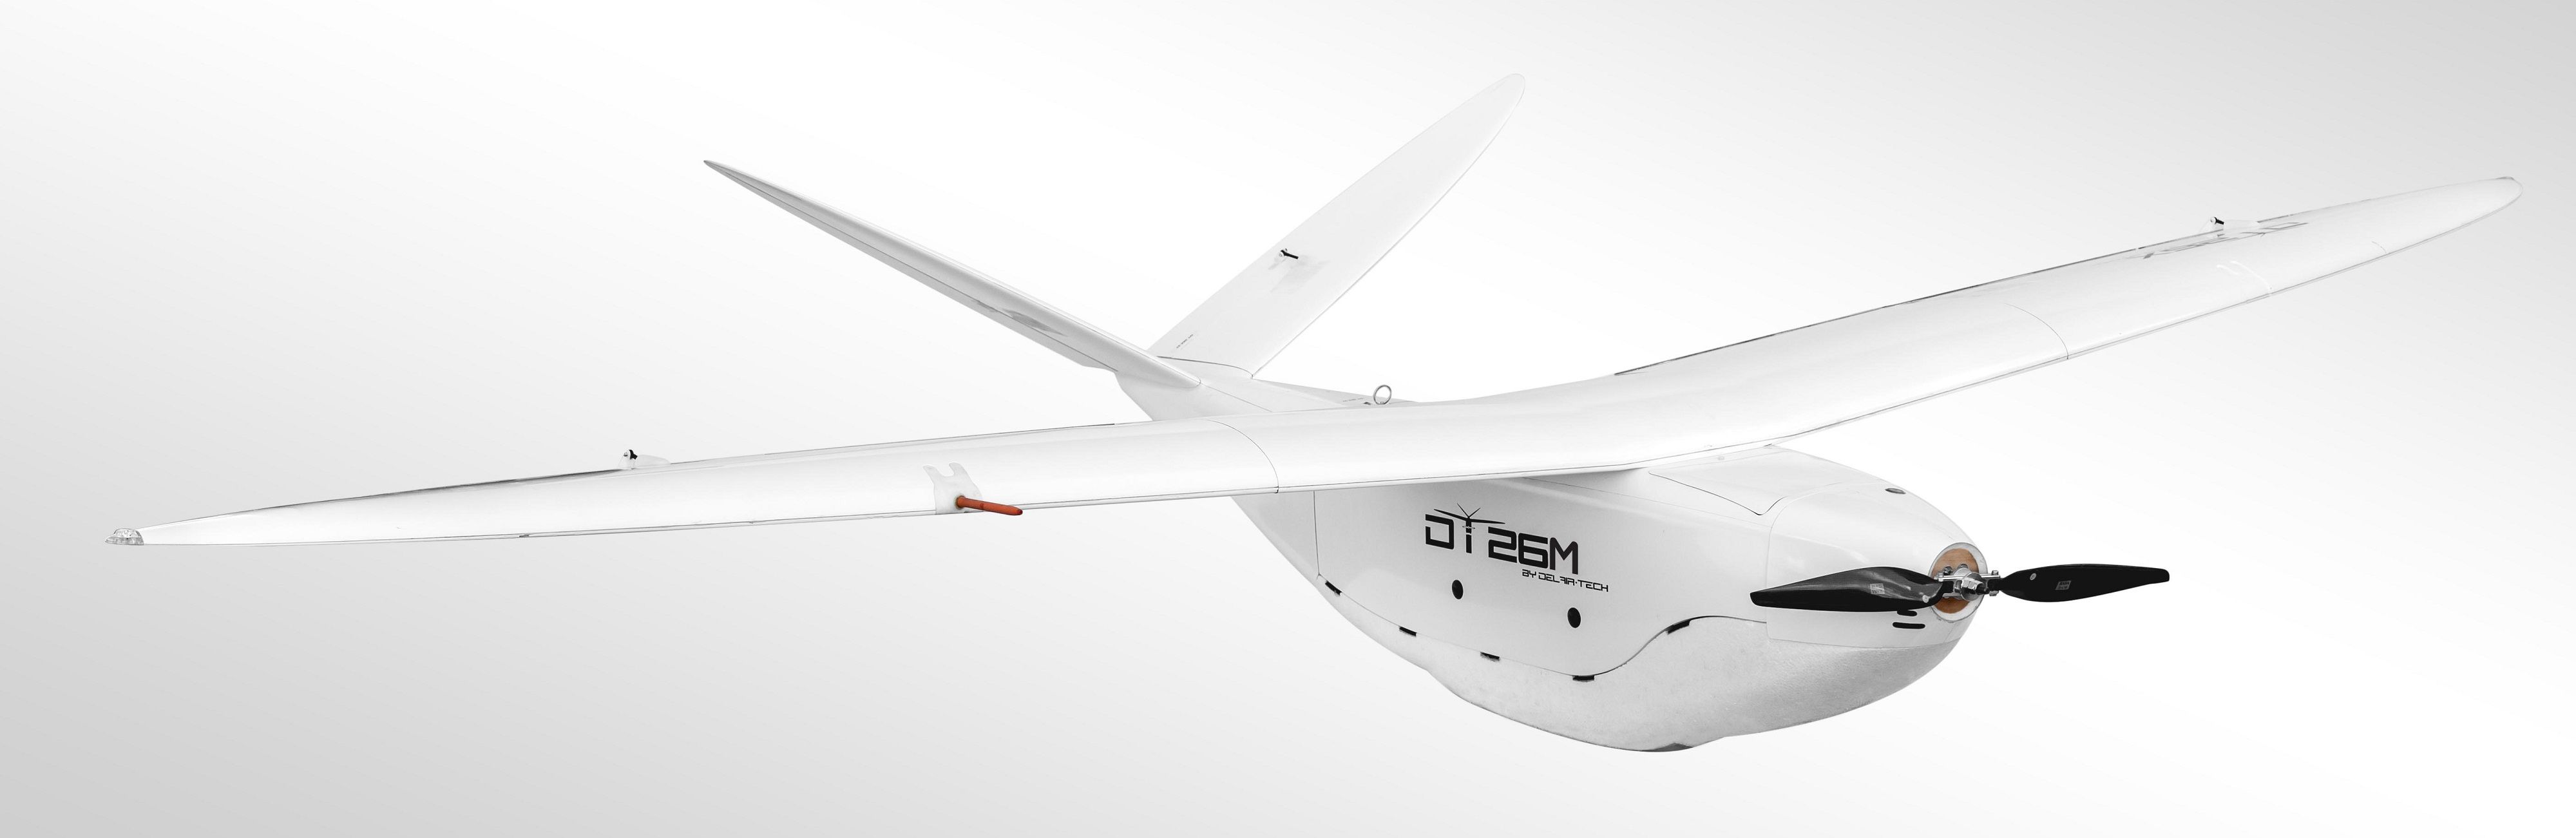 Delair-Tech long range military UAV